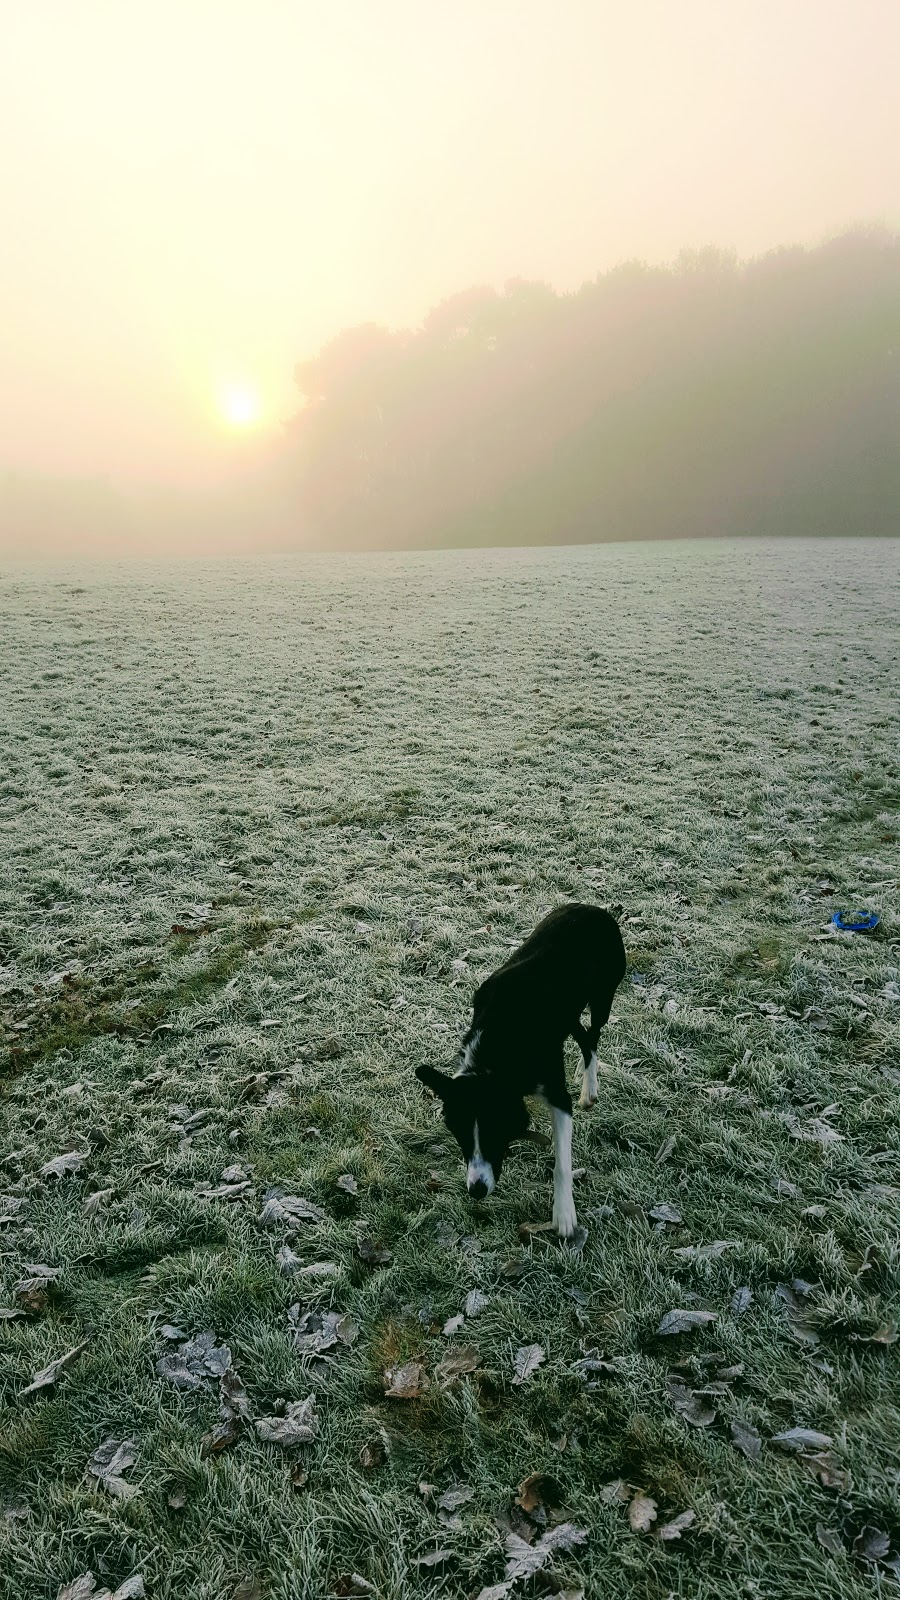 The dog with a blog post!!